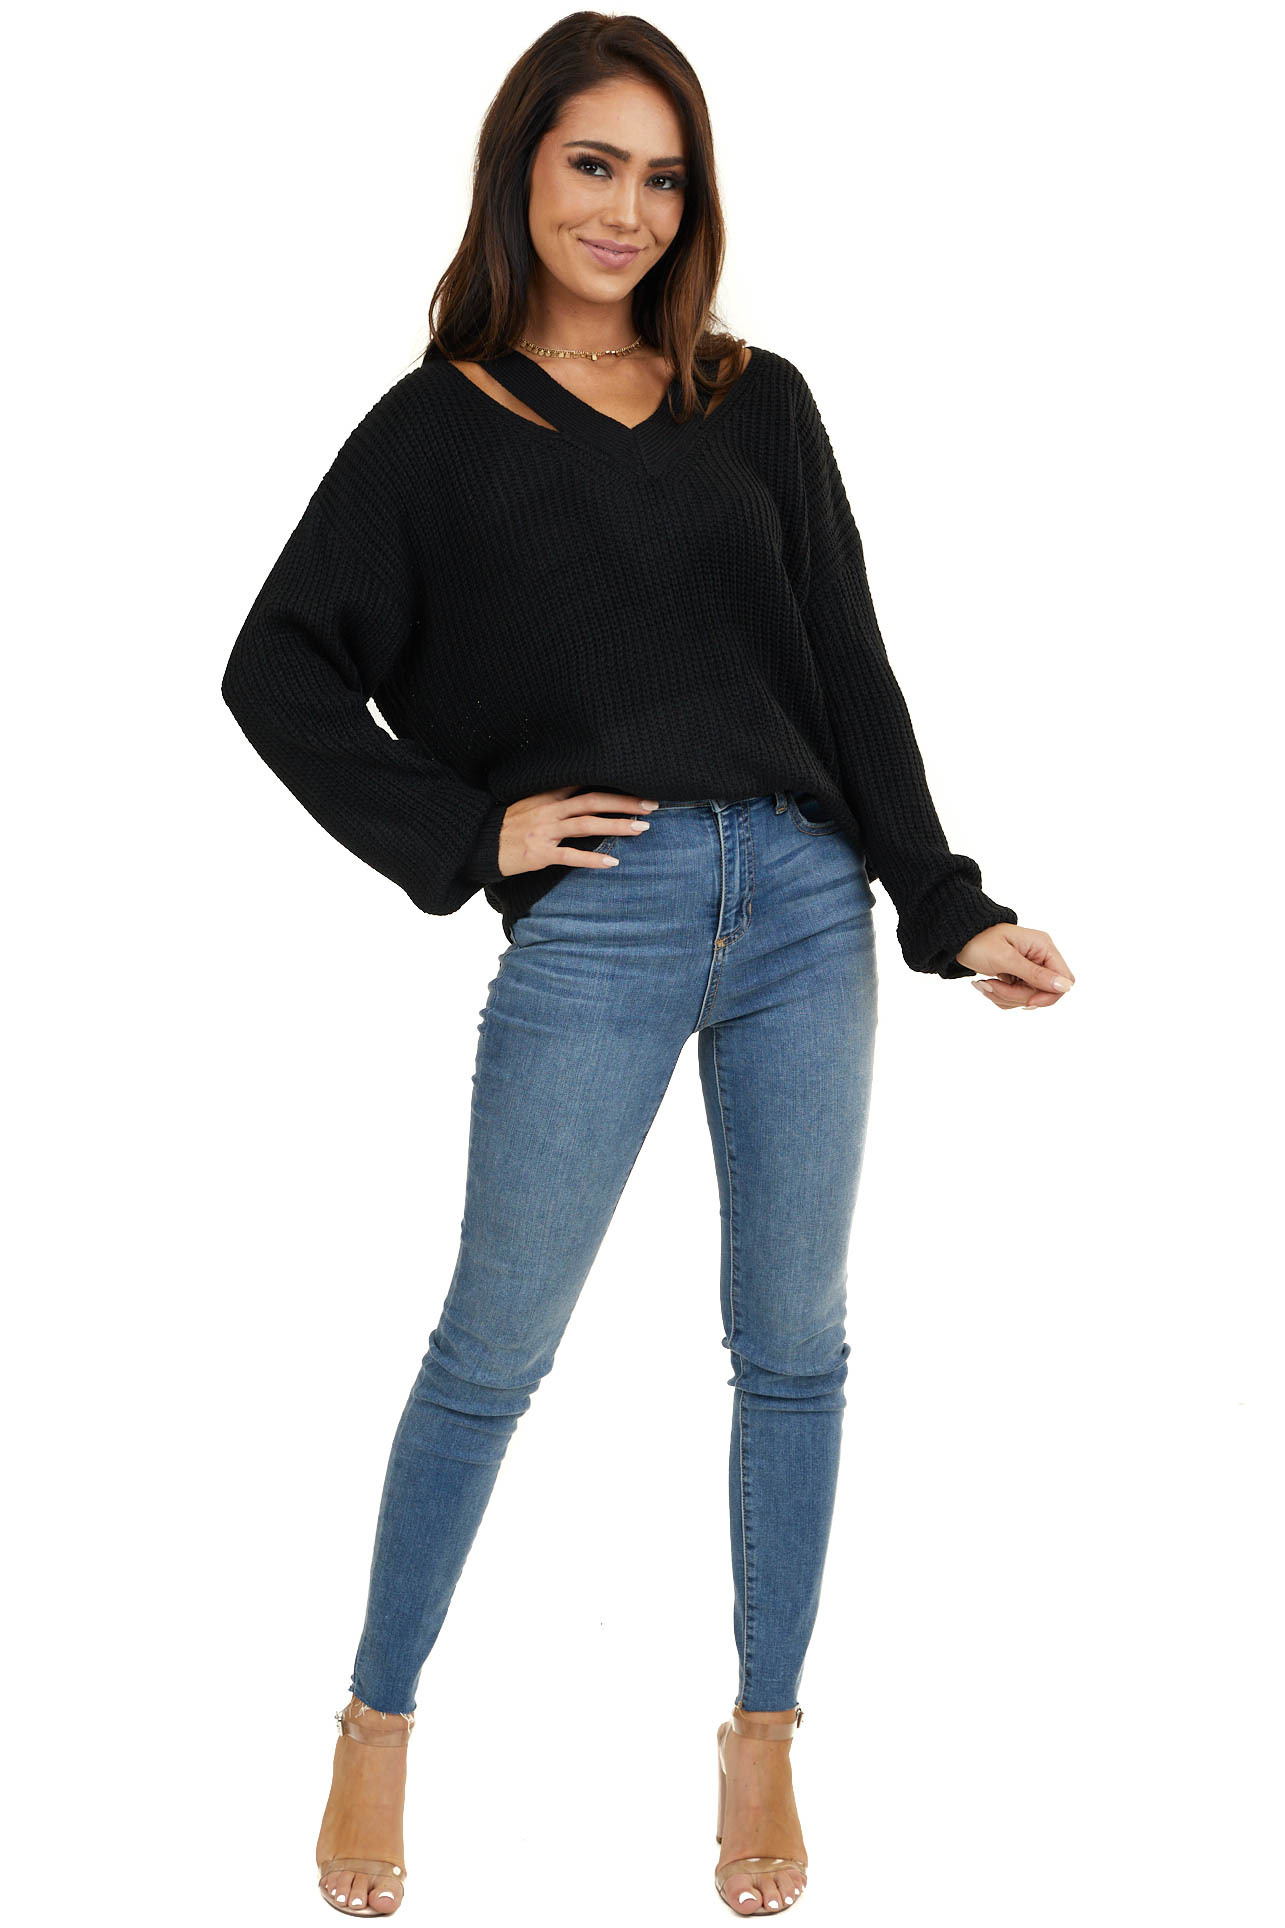 Black Long Sleeve Sweater with V Neck Cutout Detail